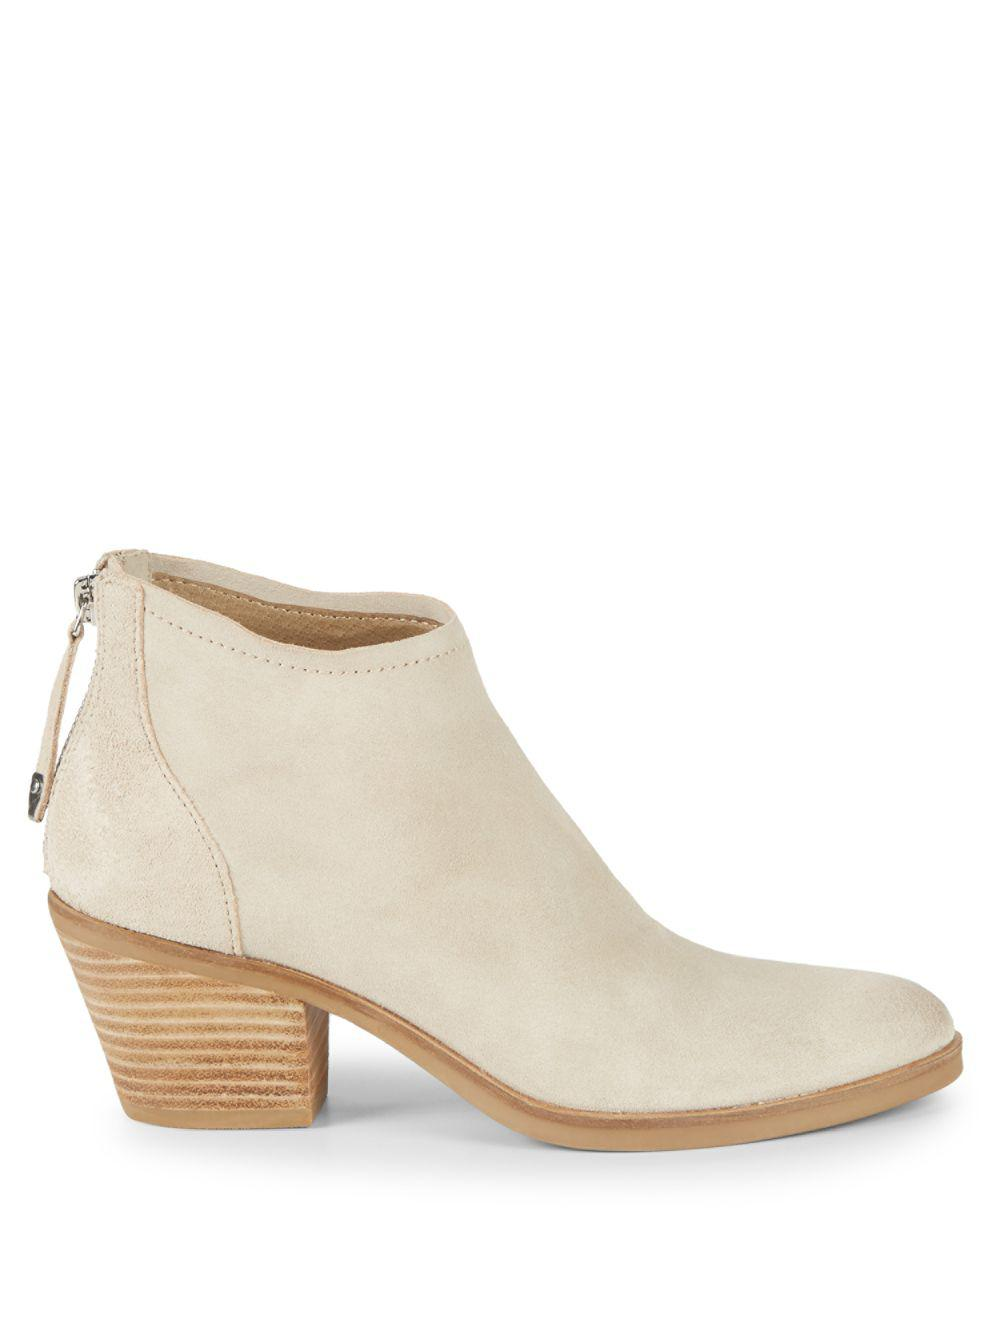 65e174d6e50 Lyst - Dolce Vita Erika Suede Booties in Natural